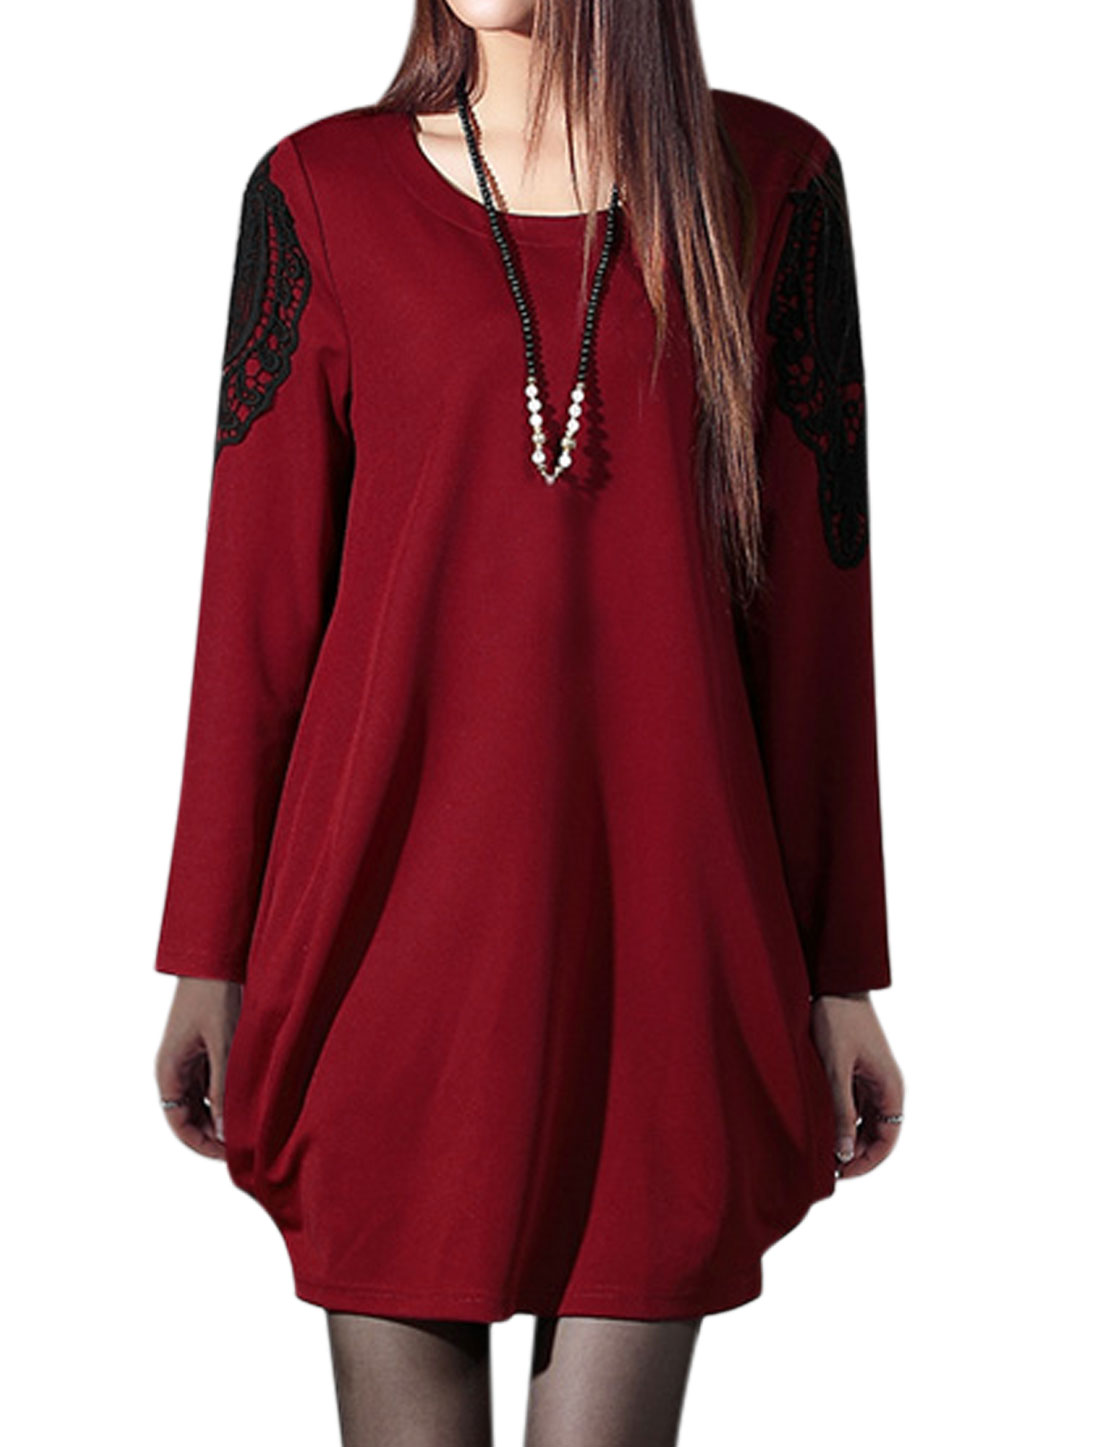 Ladies Round Neck Long Sleeves Crochet Panel Loose Fit Shift Dress Red XS